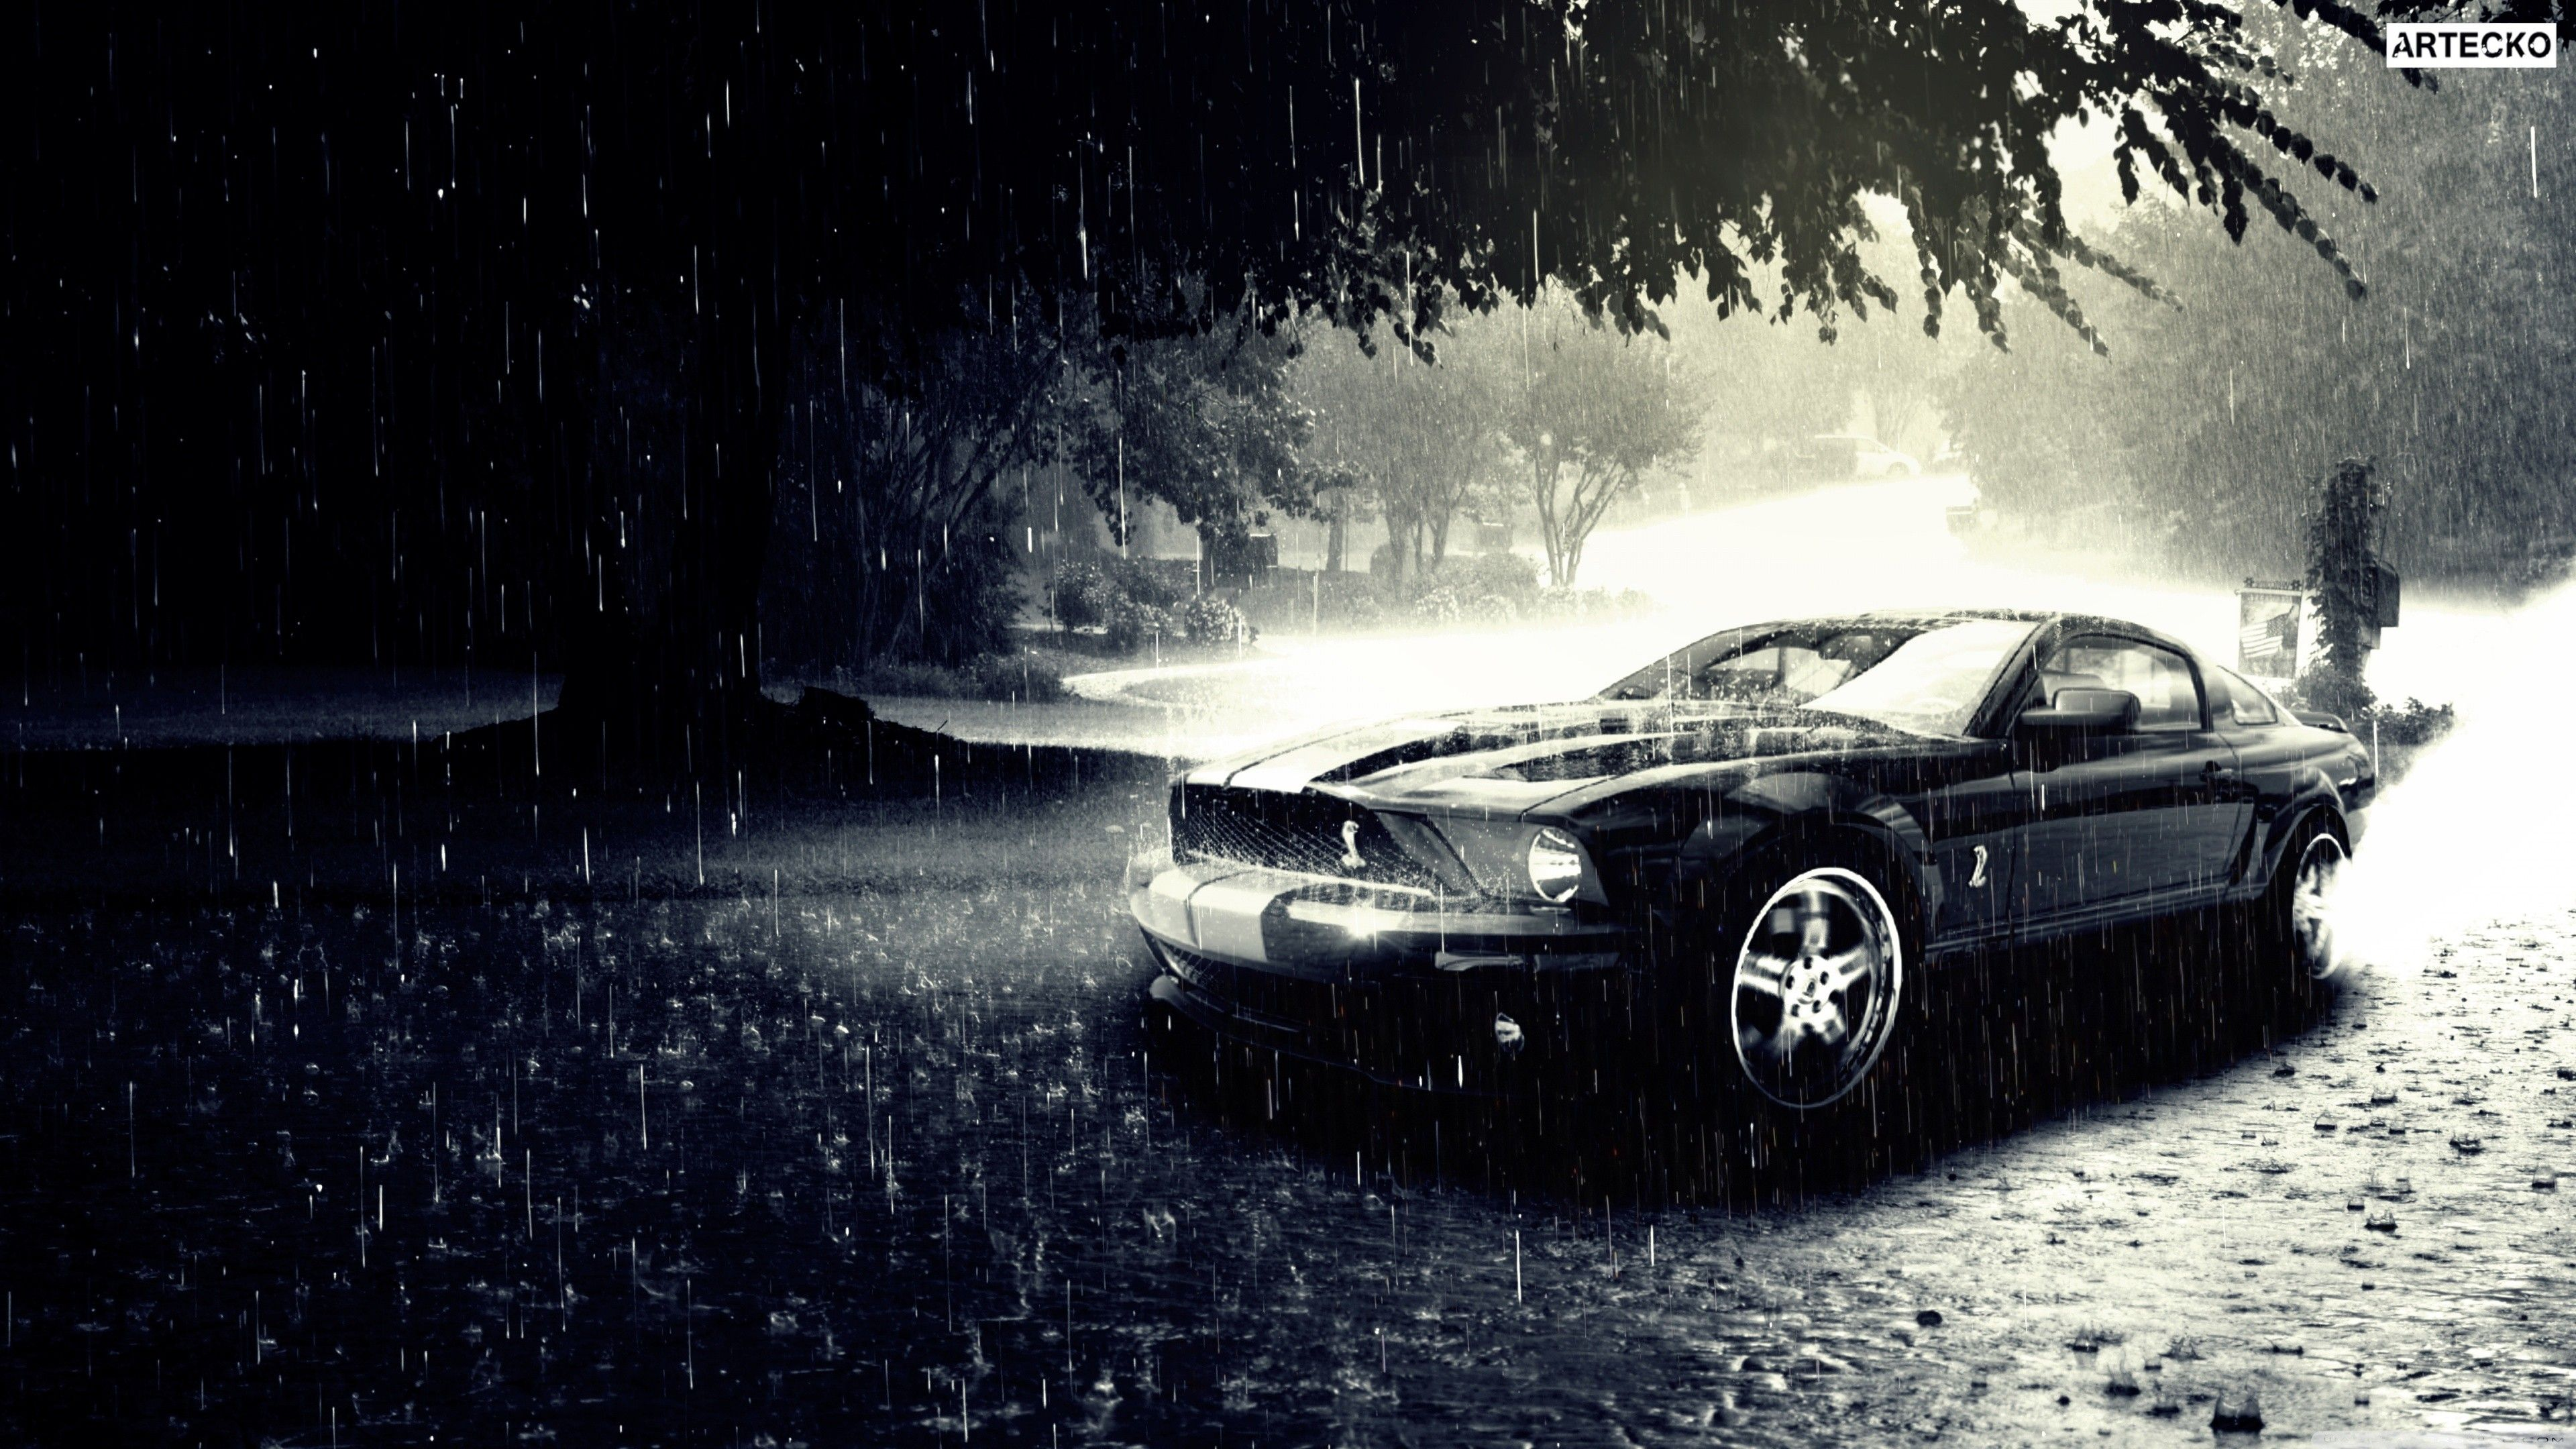 Ford Mustand Mustang Wallpapers Ford Wallpapers Cars Wallpapers Black Wallpapers Mustang Wallpaper Mustang Ford Mustang